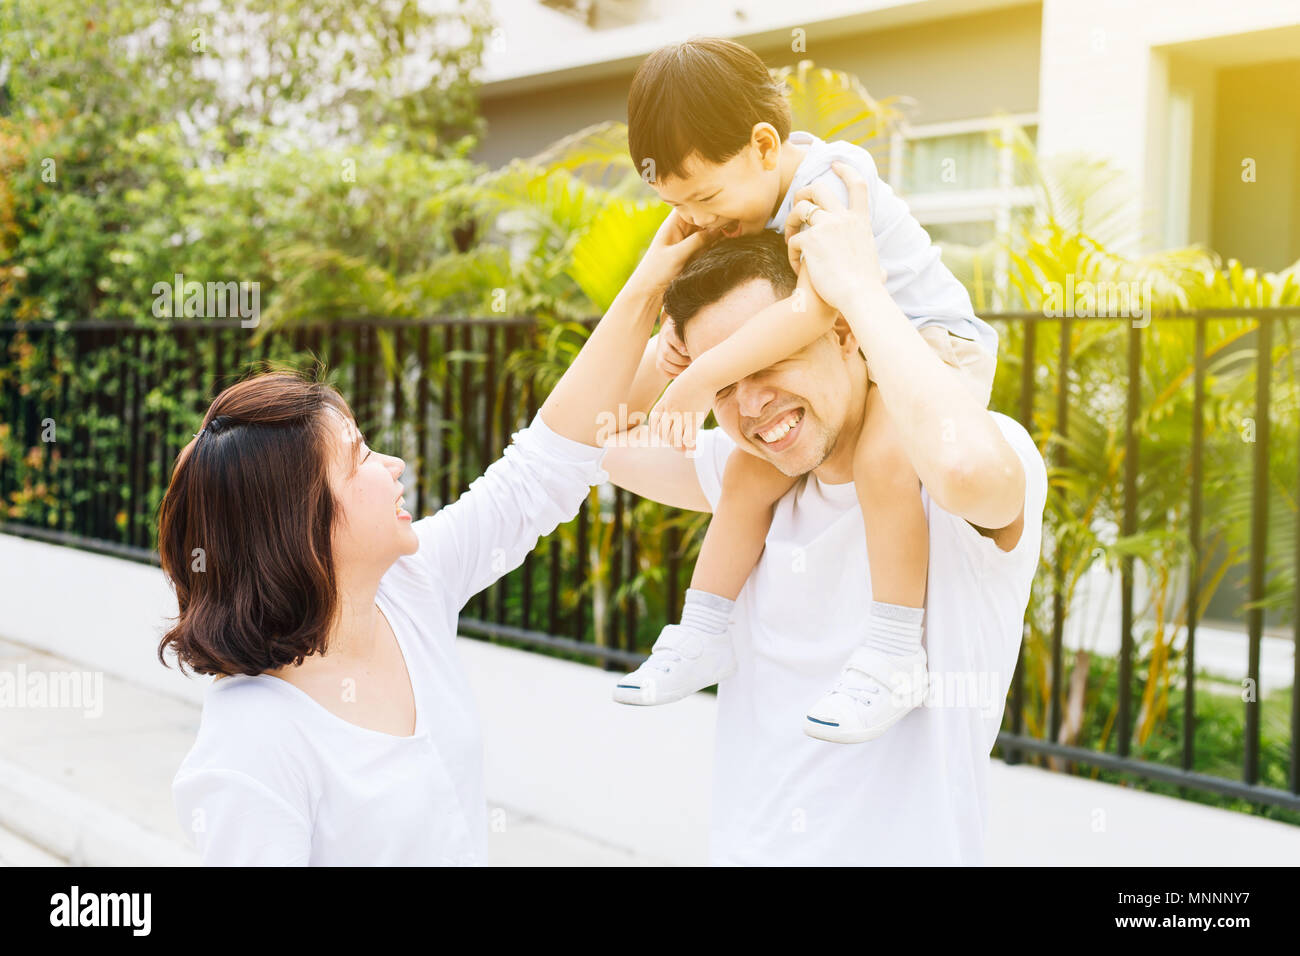 Cute Asian father piggybacking his son along with his wife in the park. Excited family spending time together with happiness - Stock Image